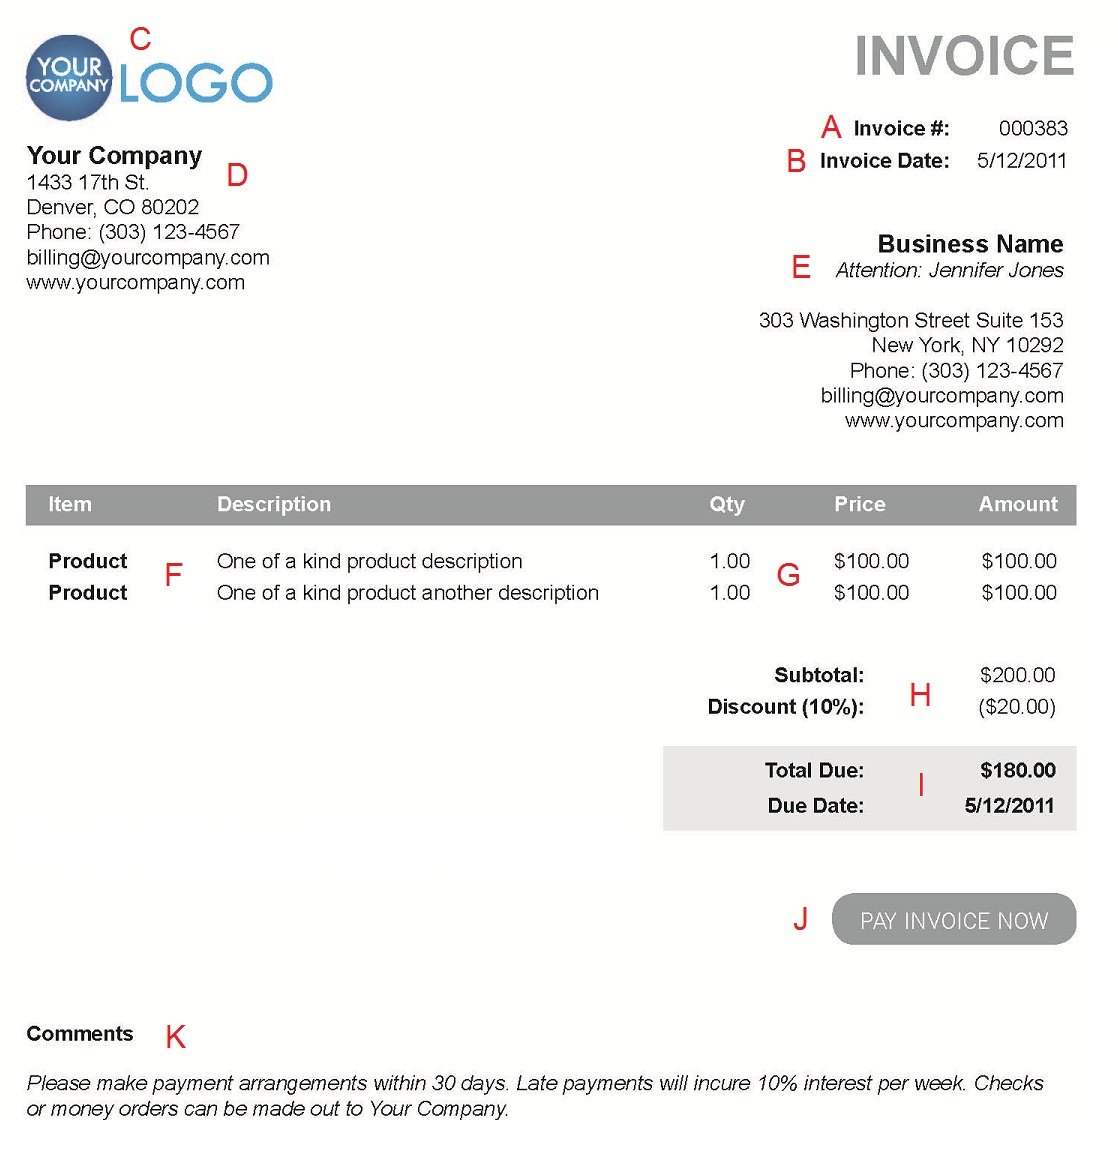 Ultrablogus  Unique The  Different Sections Of An Electronic Payment Invoice With Hot A  With Adorable Prepare Invoice Online Also Rbs Invoicing In Addition Opencart Invoice And Pro Form Invoice As Well As What Is Edi Invoicing Additionally Print Free Invoices From Paysimplecom With Ultrablogus  Hot The  Different Sections Of An Electronic Payment Invoice With Adorable A  And Unique Prepare Invoice Online Also Rbs Invoicing In Addition Opencart Invoice From Paysimplecom